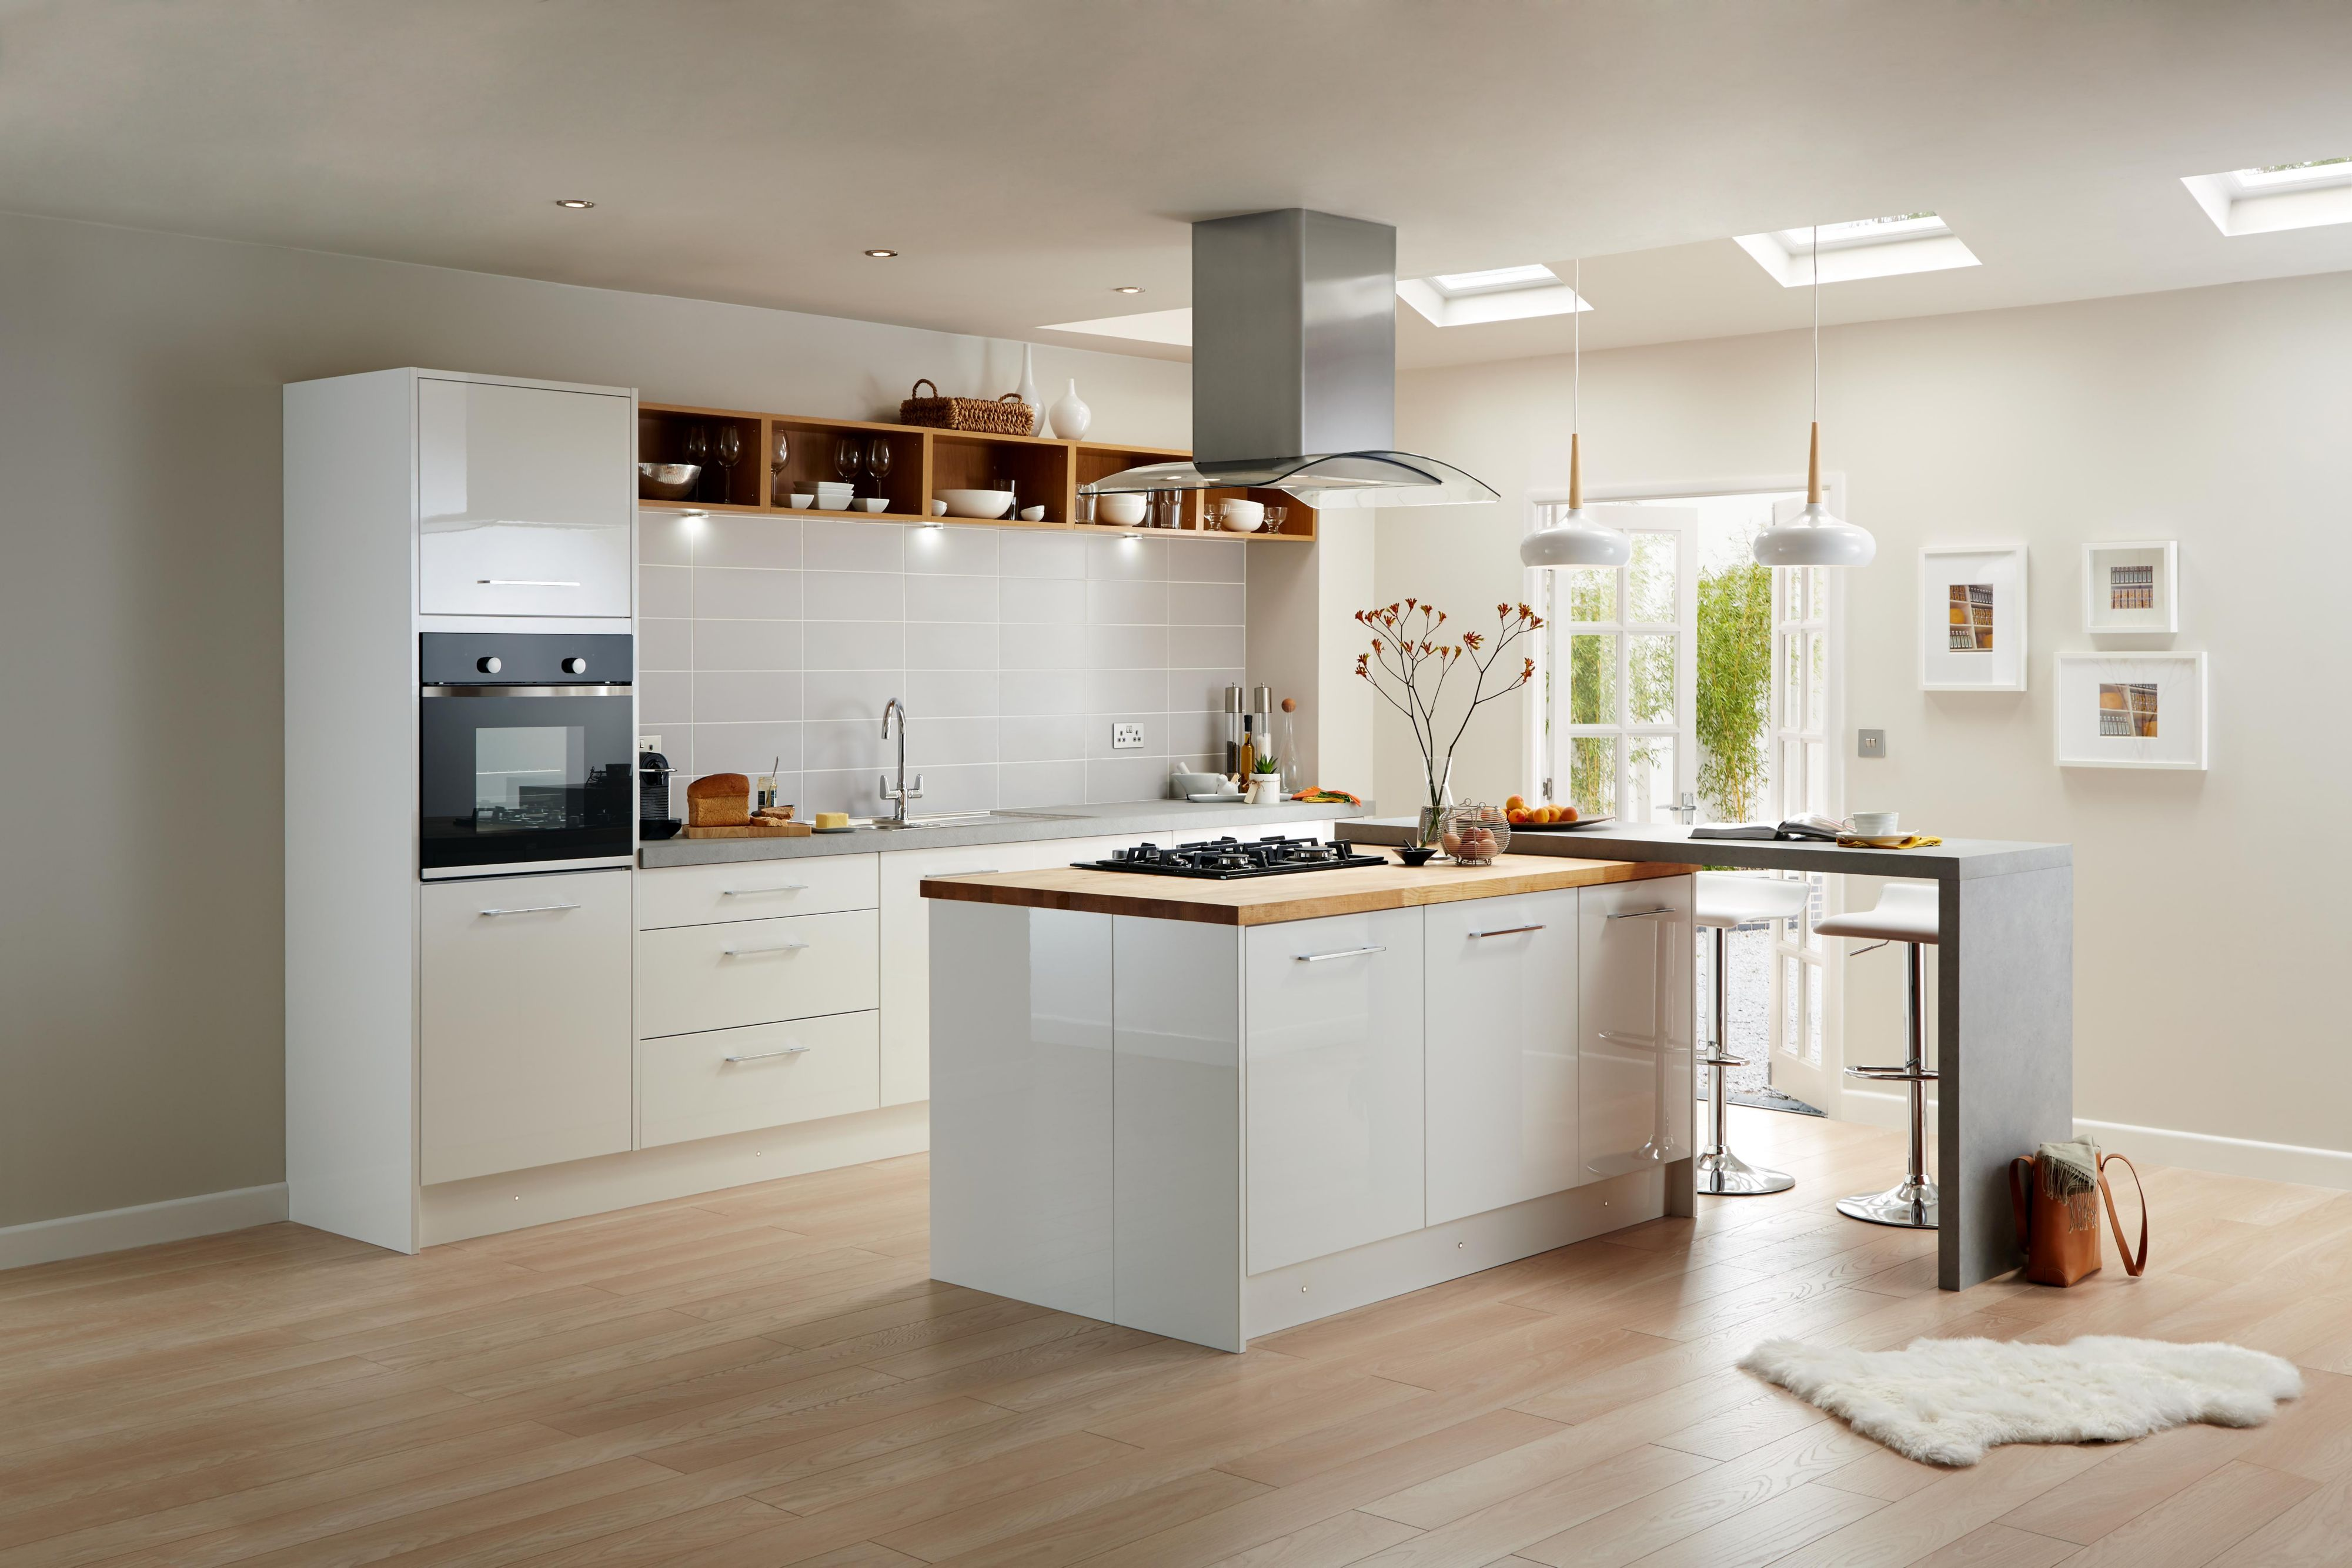 High gloss kitchens cooke u0026 lewis raffello high gloss white slab COUKTVD